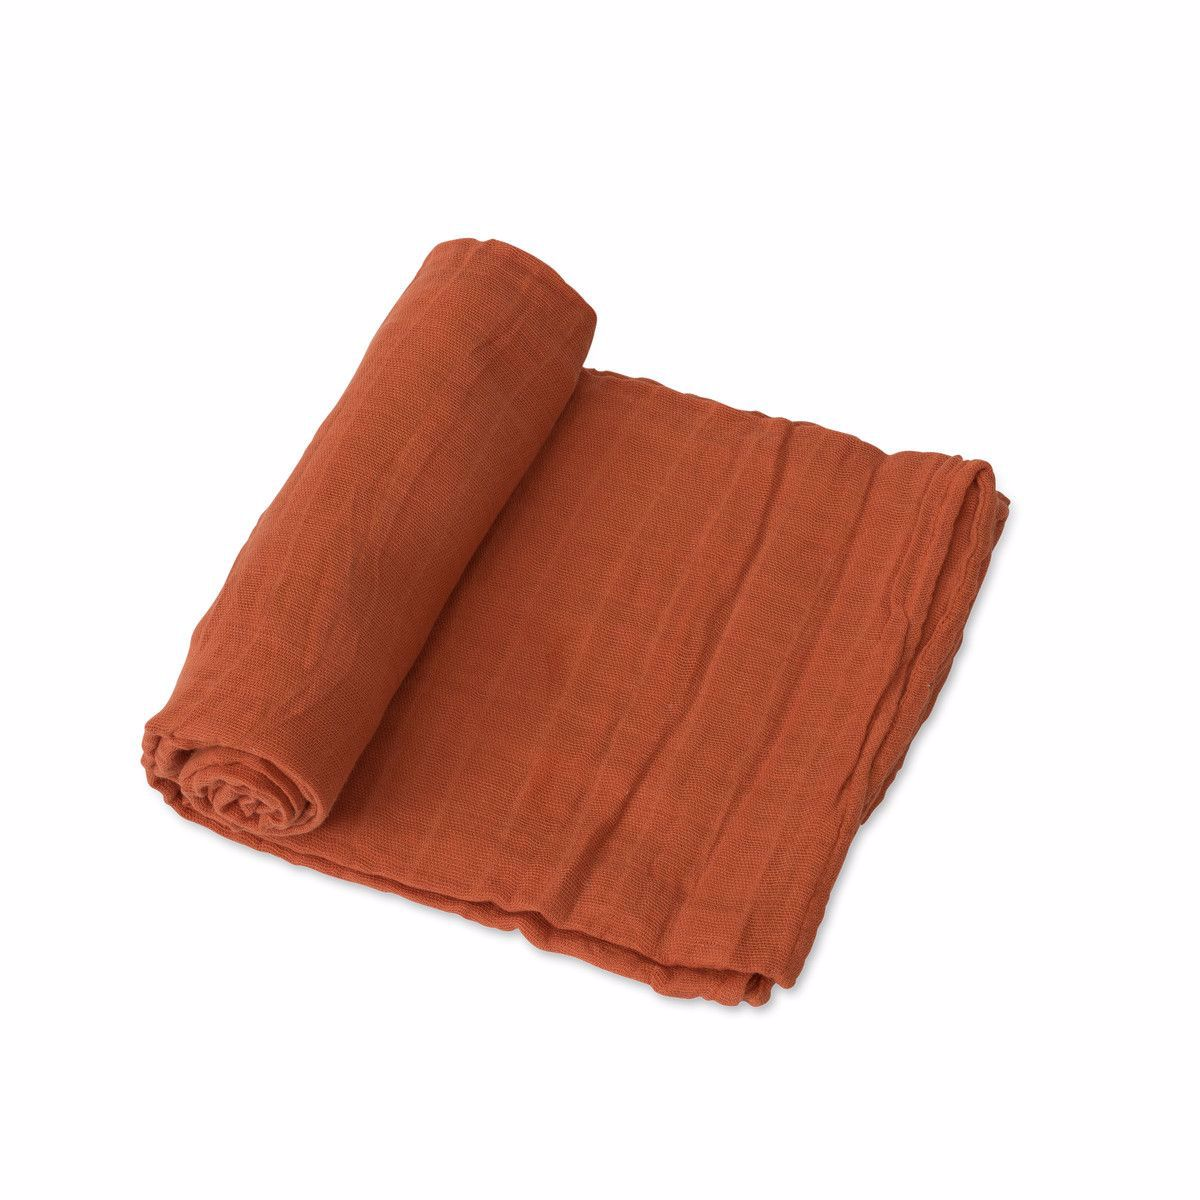 Picture of Cotton Muslin Swaddle Single - Rust by Little Unicorn